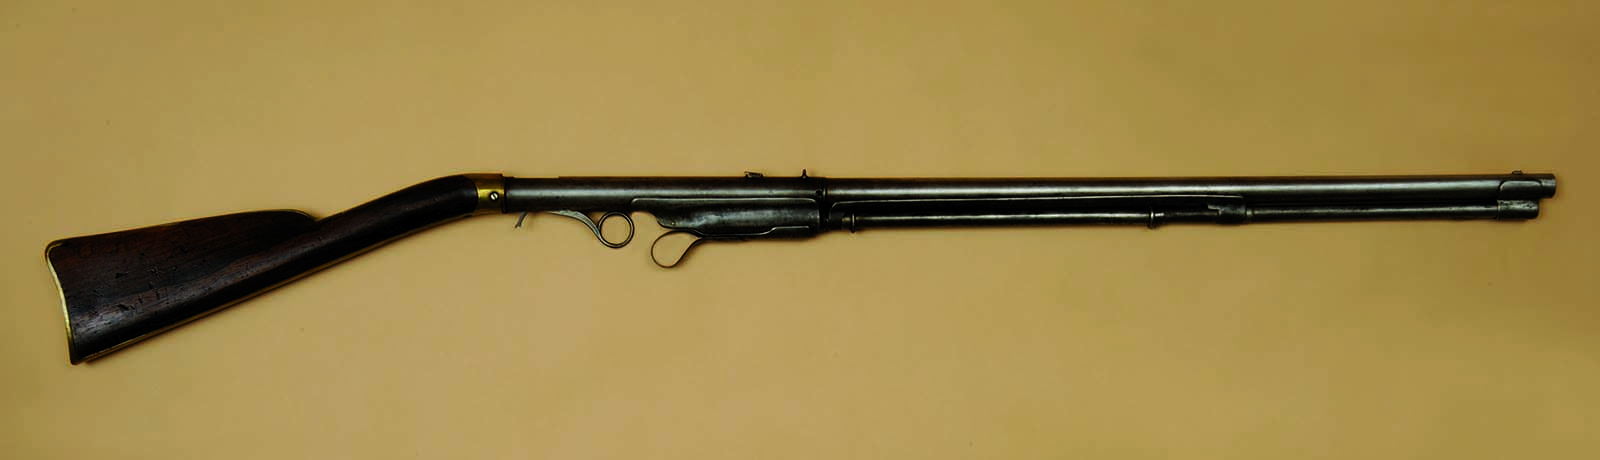 Hunt Volitional Repeater, the earliest direct ancestor of what became the Winchester repeating rifle, ca. 1848. Gift of Olin Corporation, Winchester Arms Collection. 1988.8.150